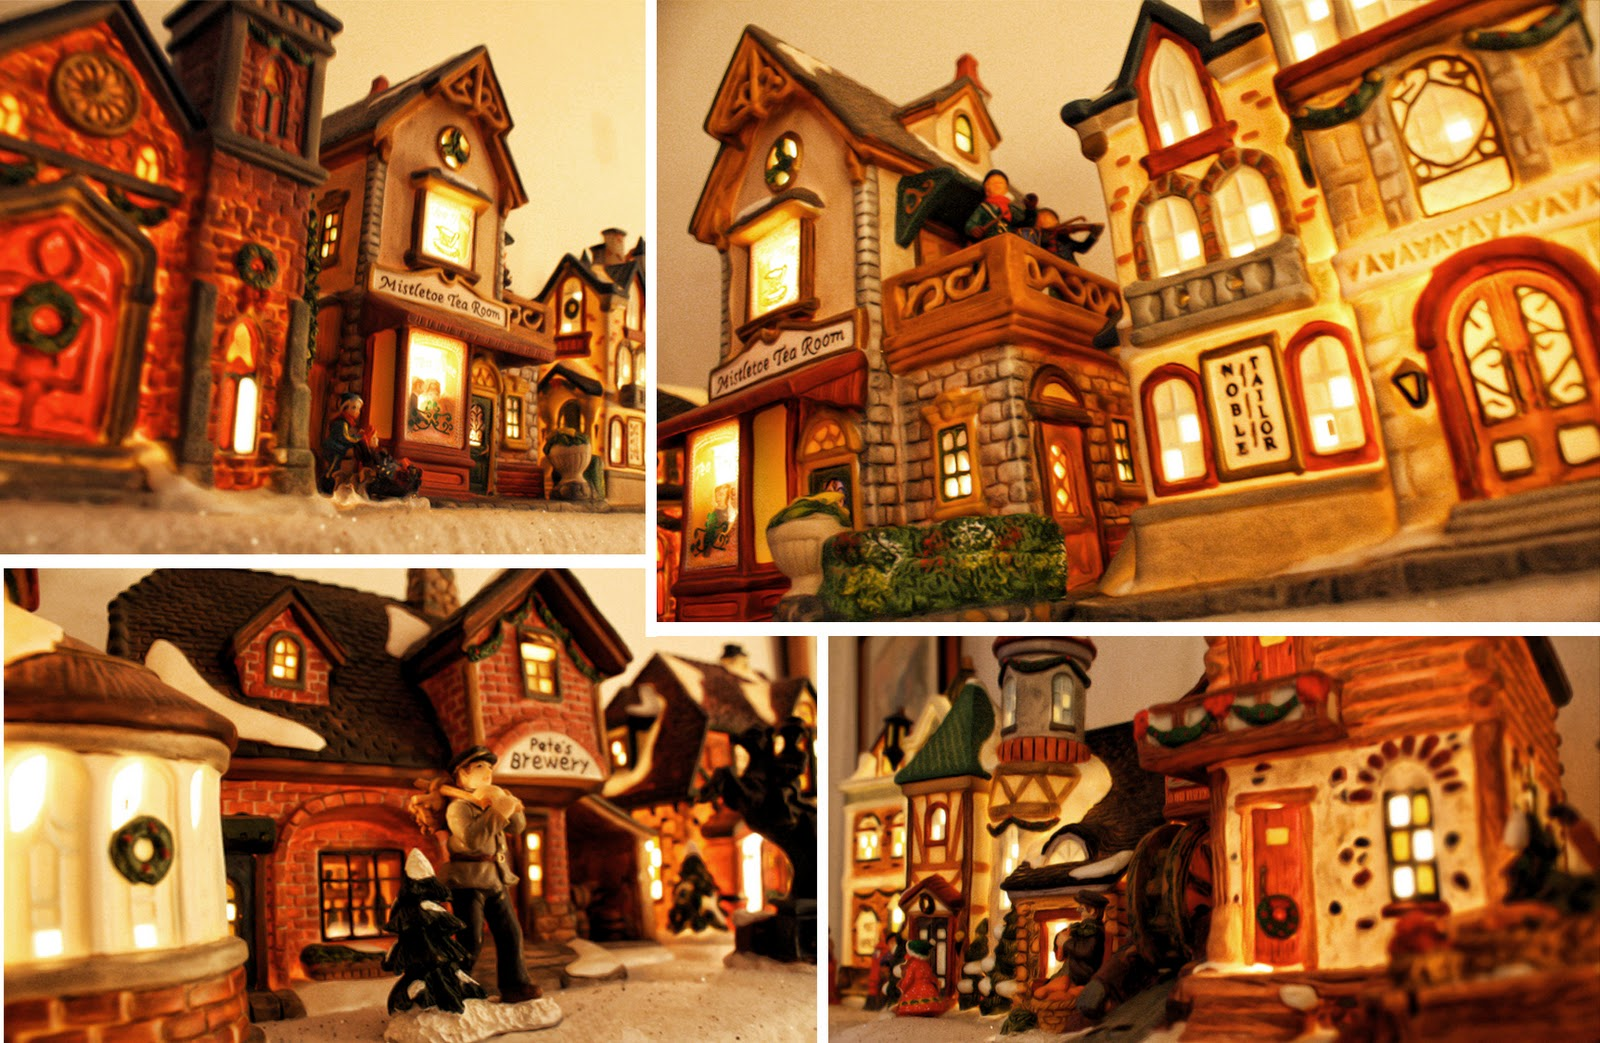 Christmas village pictures view original updated on 01 5 2015 at